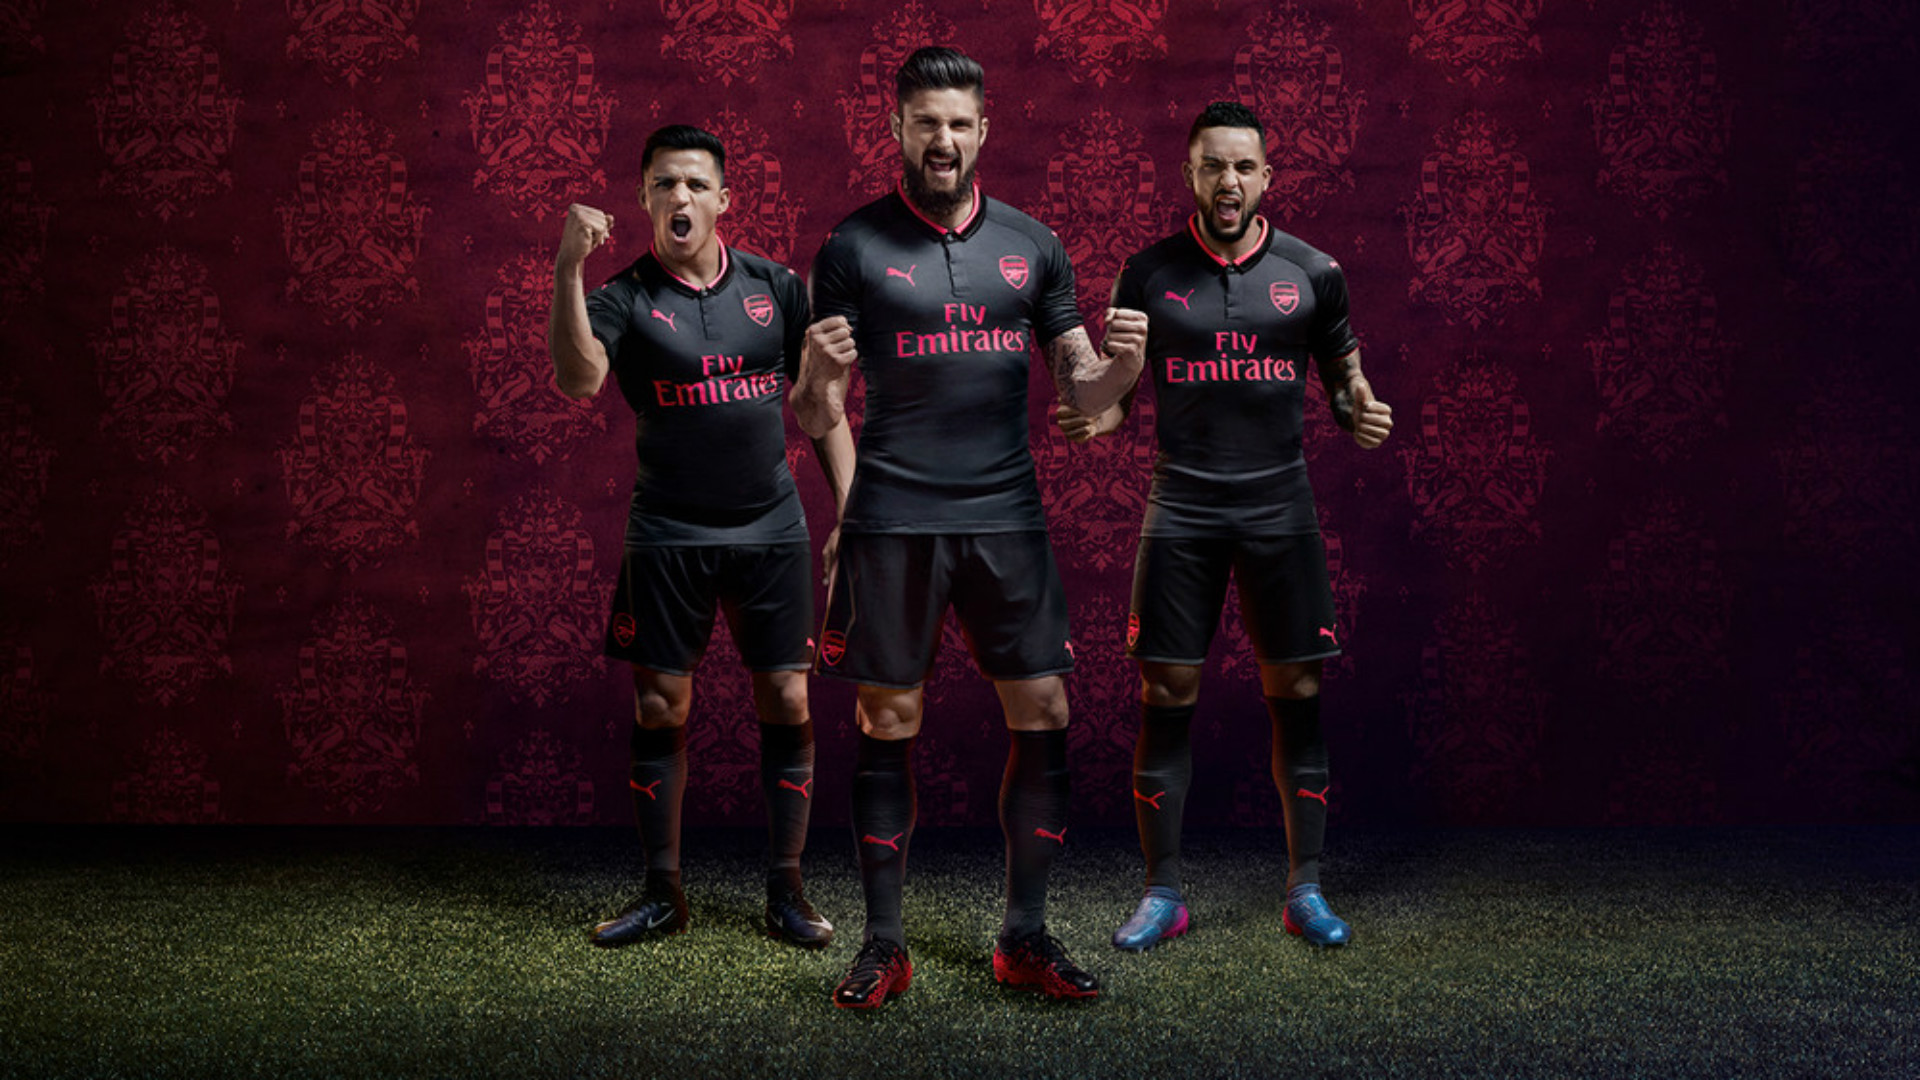 a7615cba8dd Arsenal News: Gunners unveil new black and pink third kit | Sporting News